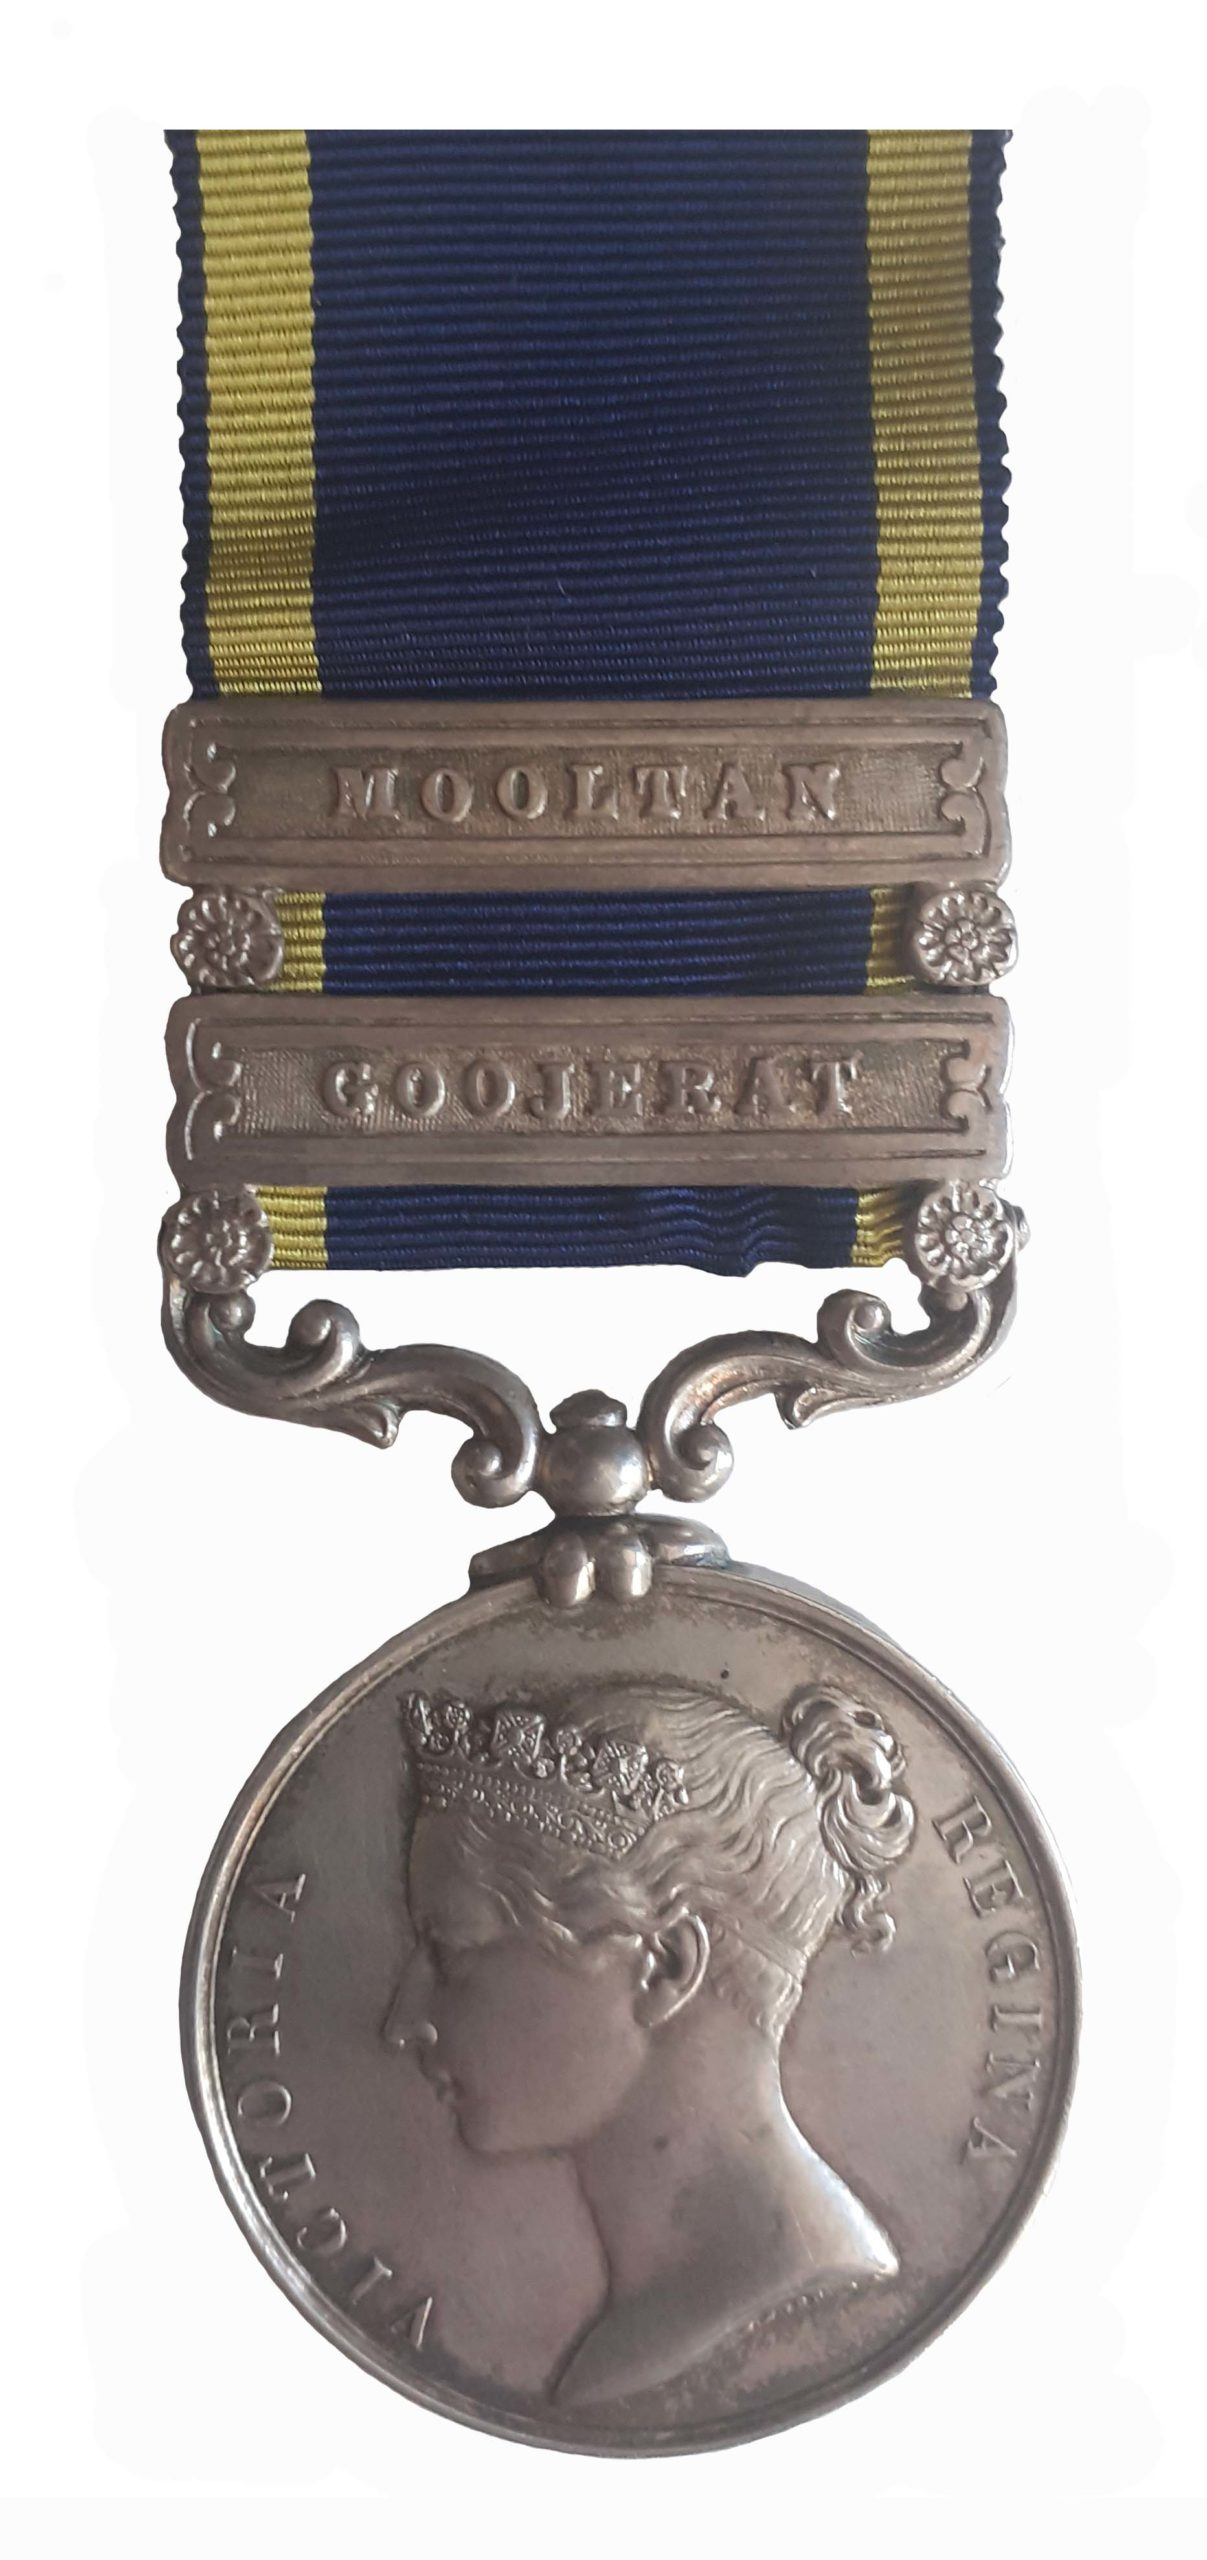 Punjab Medal 1845-46, two clasps, Goojerat, Mooltan to H. Riley